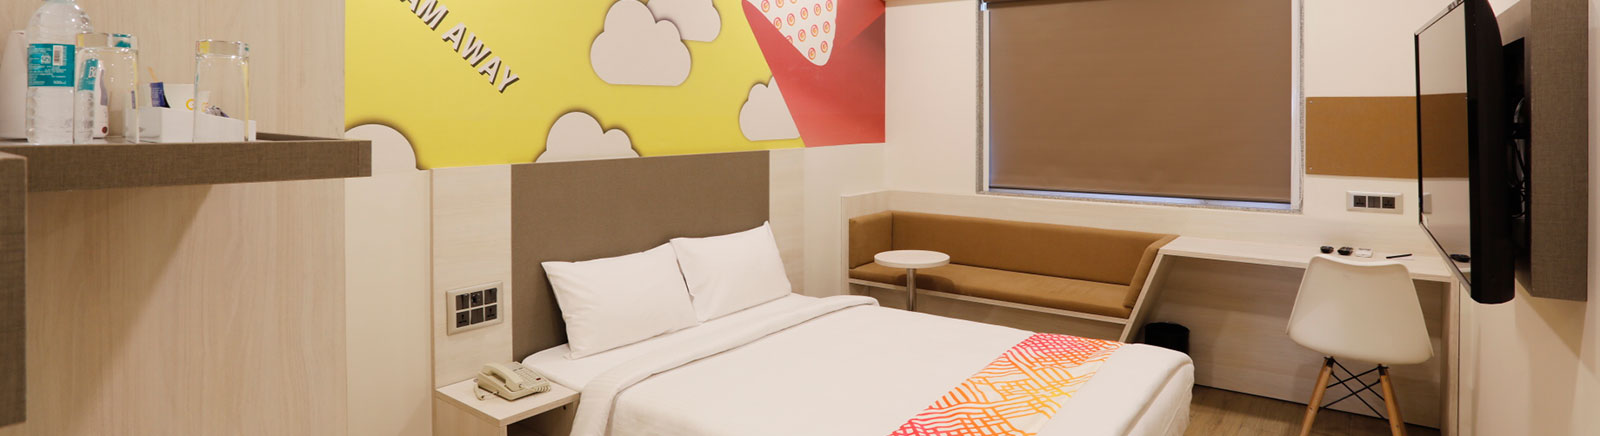 Ginger Hotel Sanand Rooms